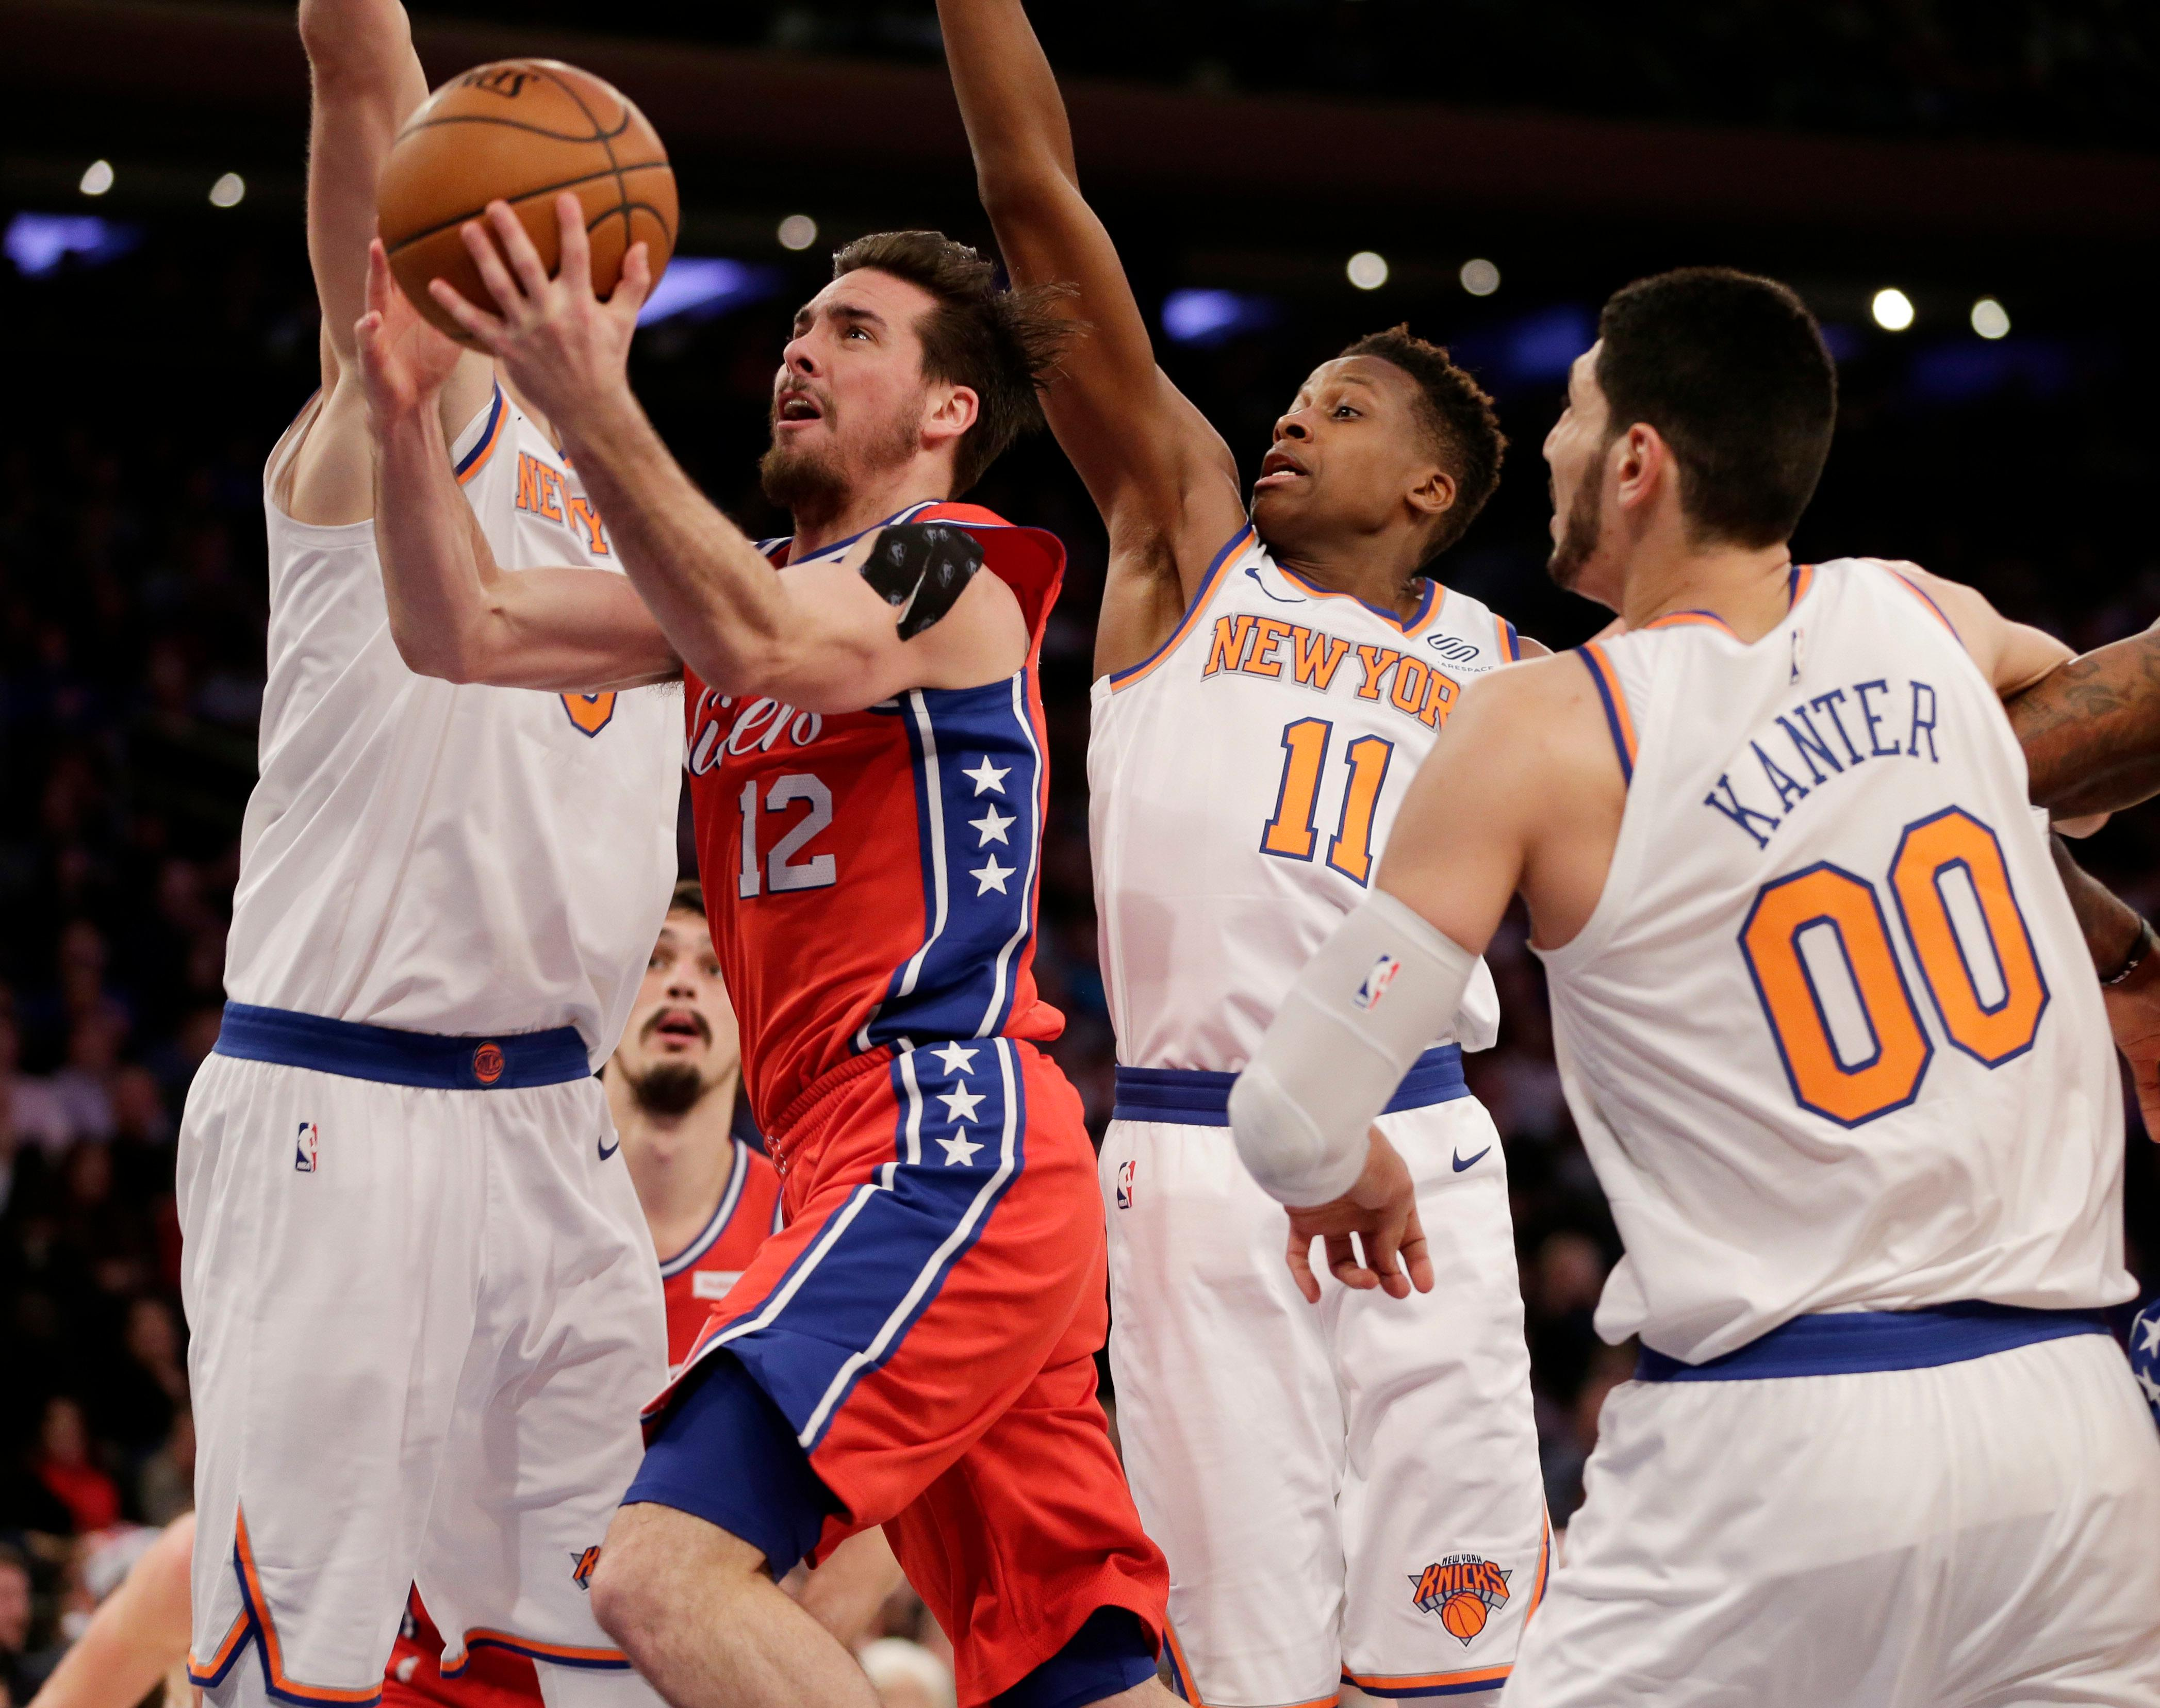 Philadelphia 76ers' T.J. McConnell, second from left, drives to the basket through New York Knicks defenders during the second half of the NBA basketball game, Monday, Dec. 25, 2017, in New York. The 76ers defeated the Knicks 105-98. (AP Photo/Seth Wenig)